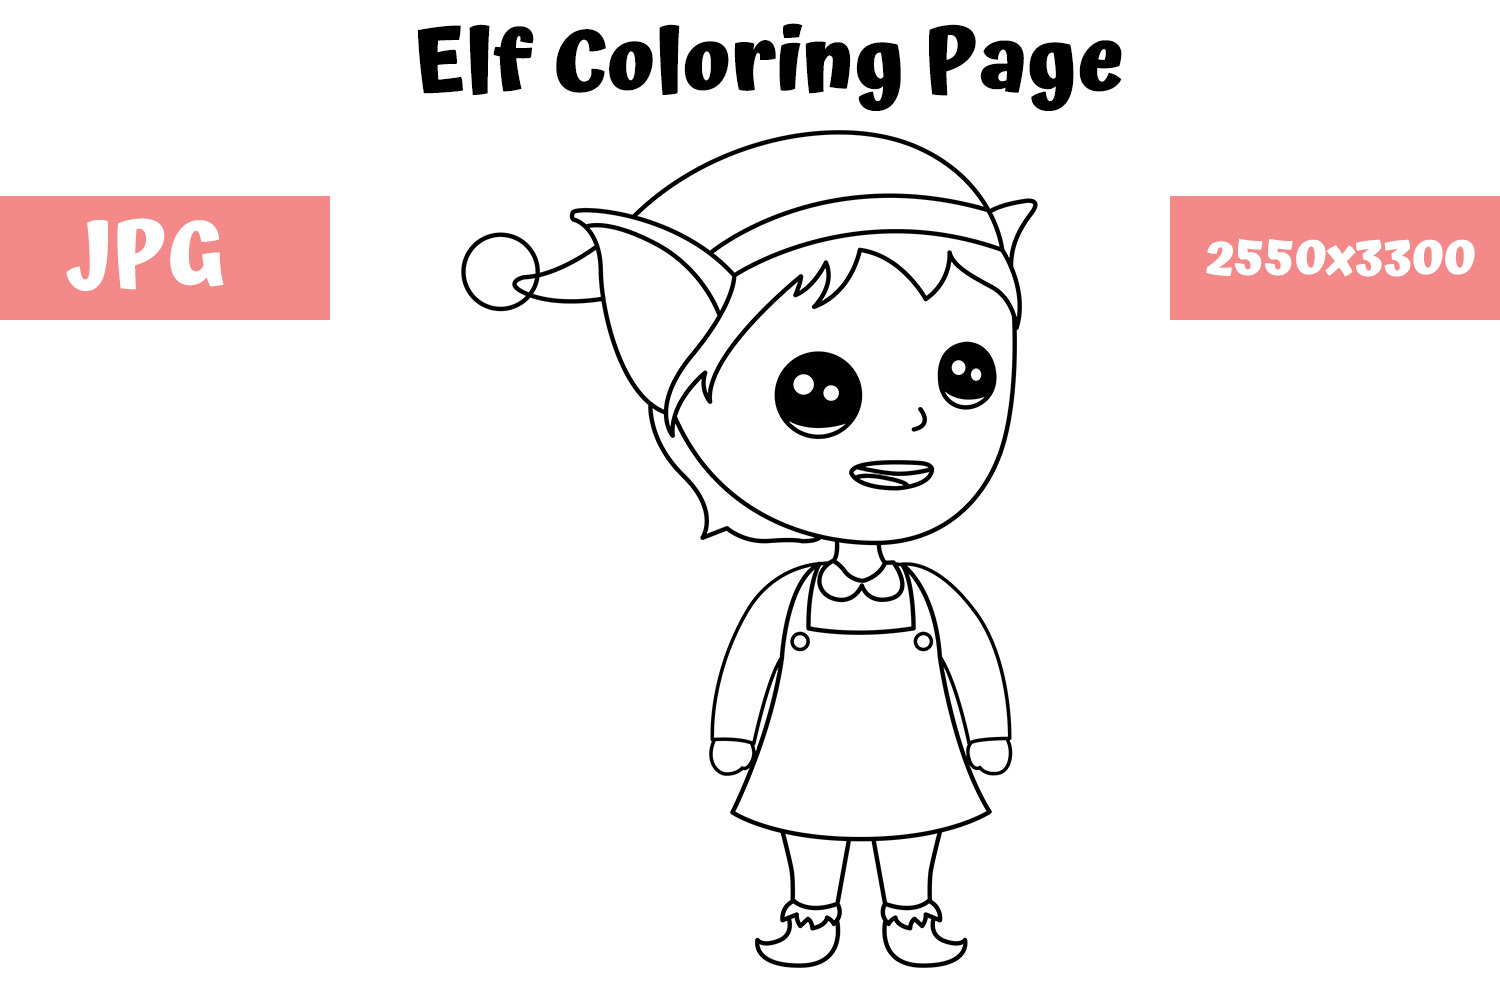 Download Free Elf Coloring Book Page For Kids Graphic By Mybeautifulfiles for Cricut Explore, Silhouette and other cutting machines.